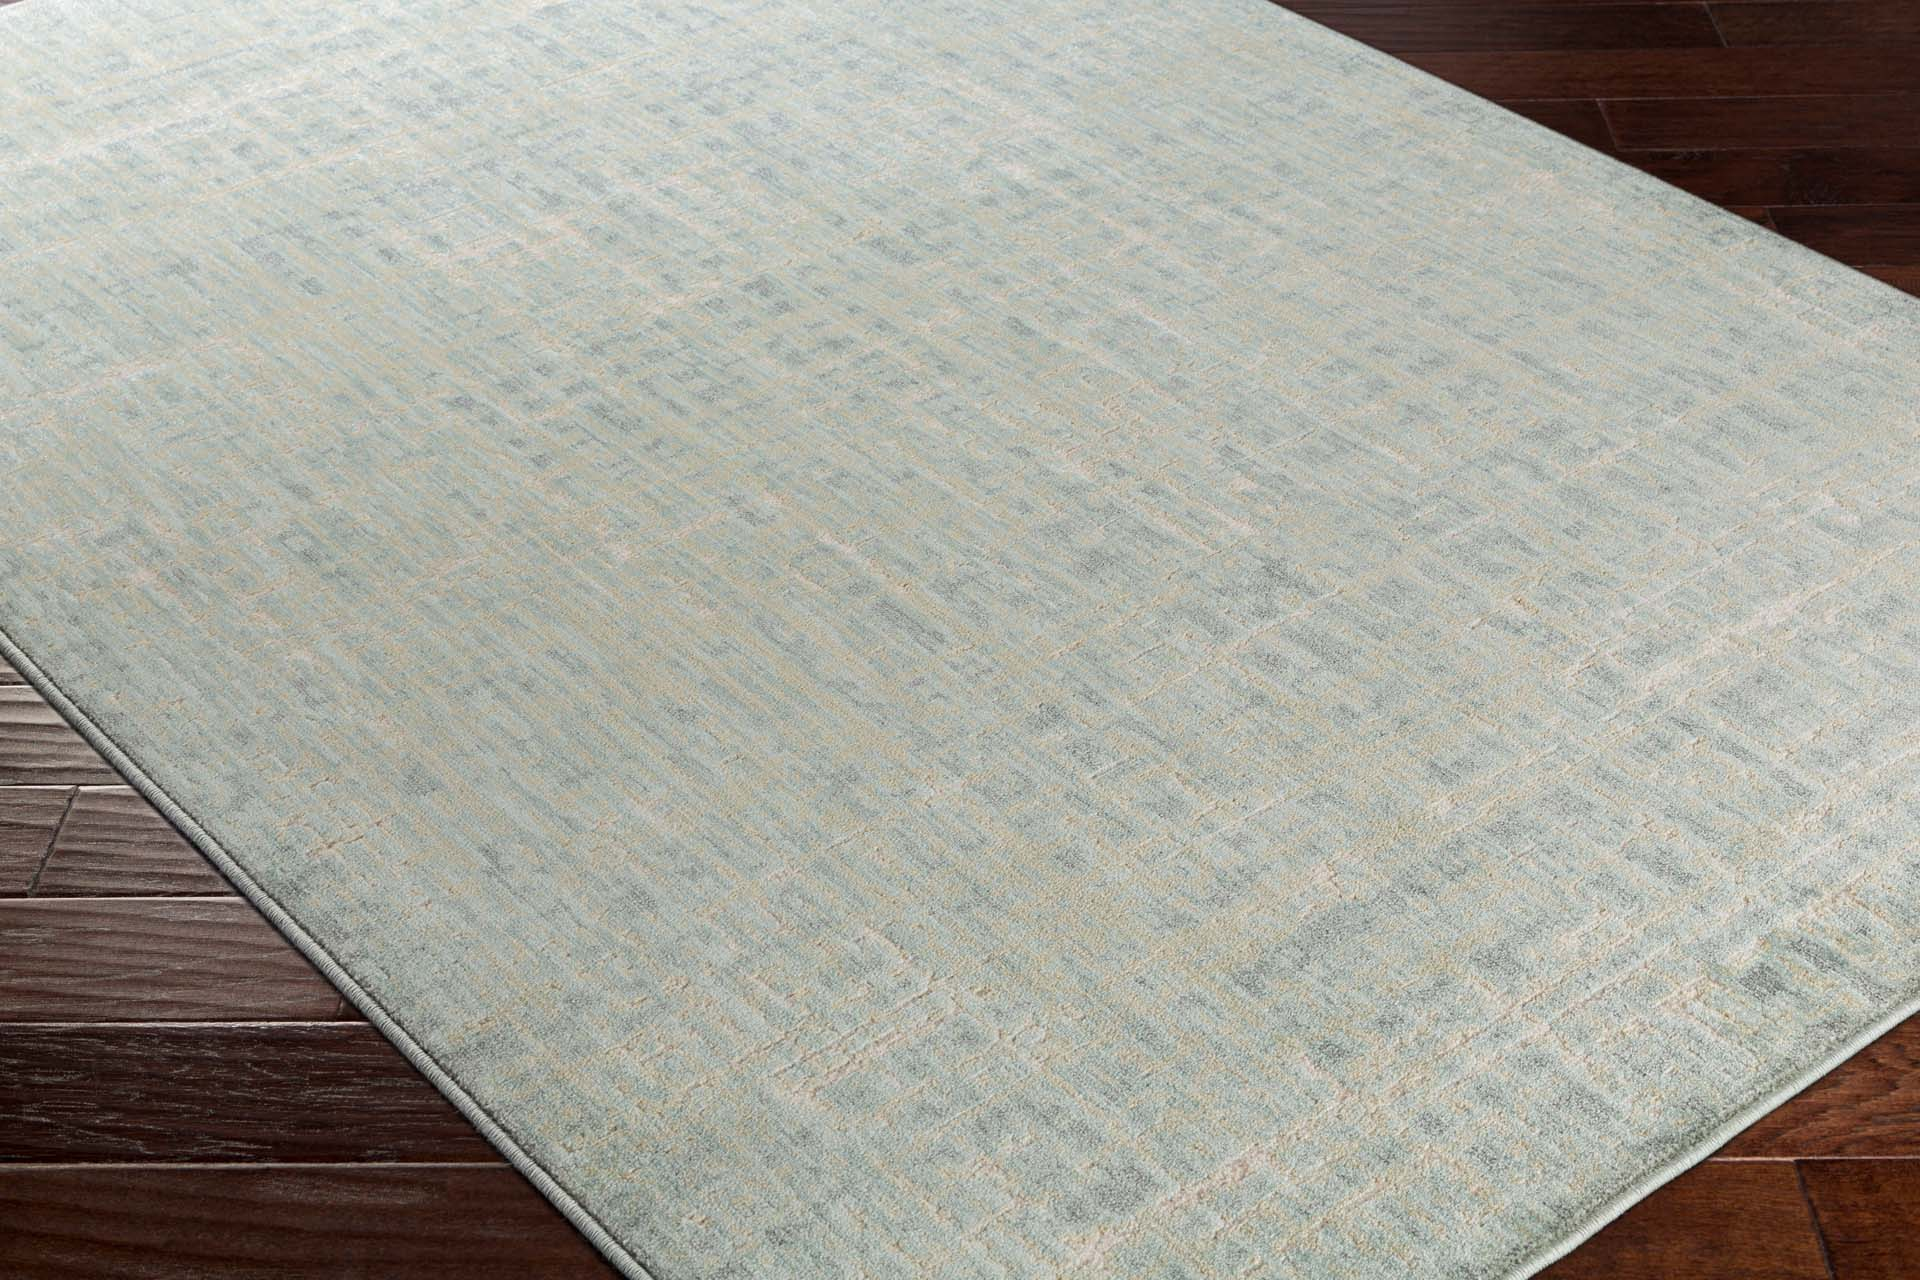 Modern neutral tone machine made Egyptian area rug in green with hints of cream and beige on wood floor